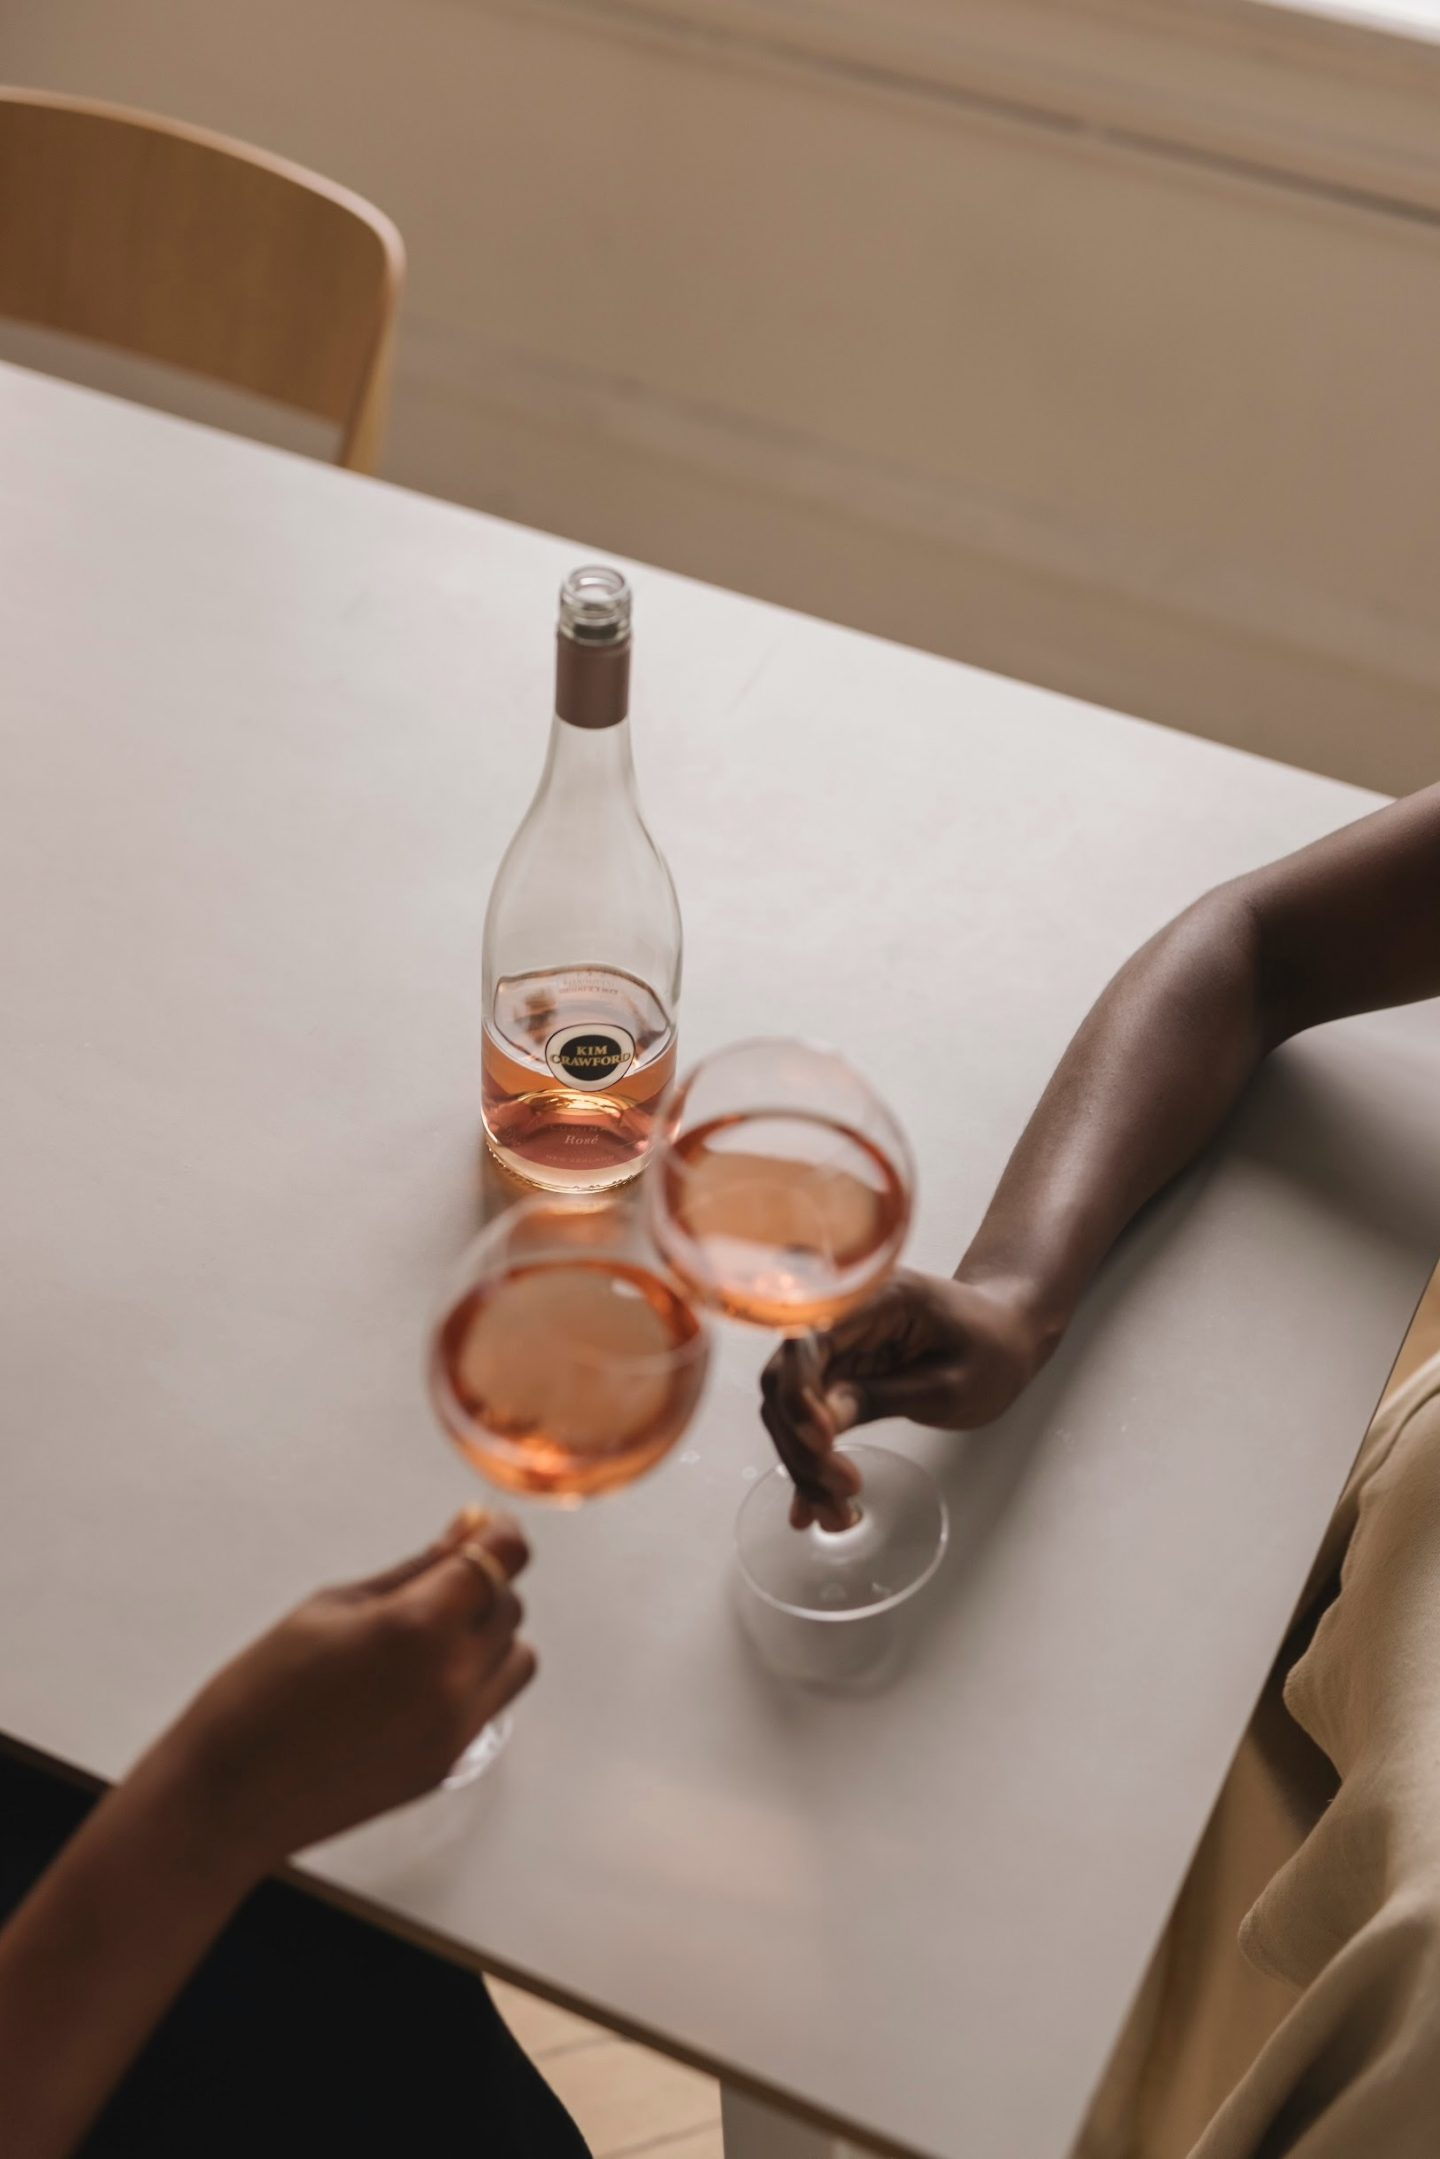 Cheers with the Kim Crawford Rose Wine